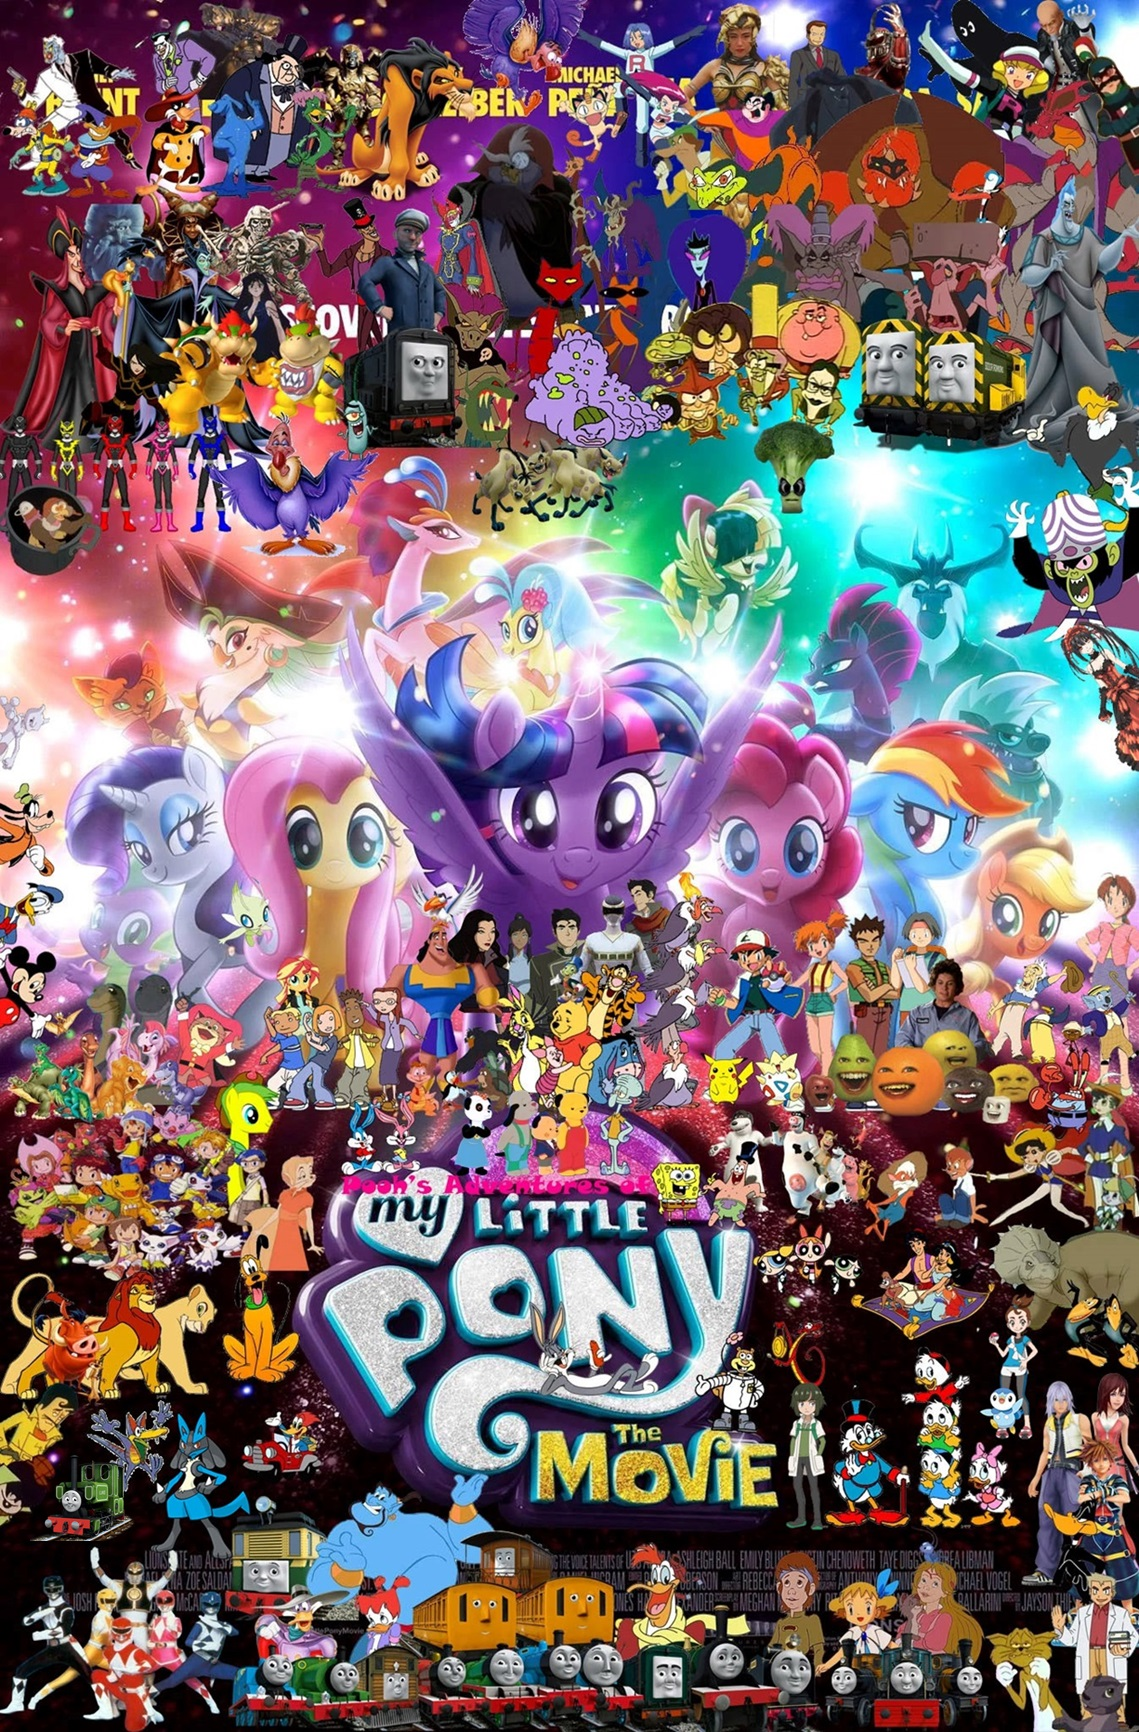 Pooh 39 s adventures of my little pony the movie 2017 - My little pony wikia ...